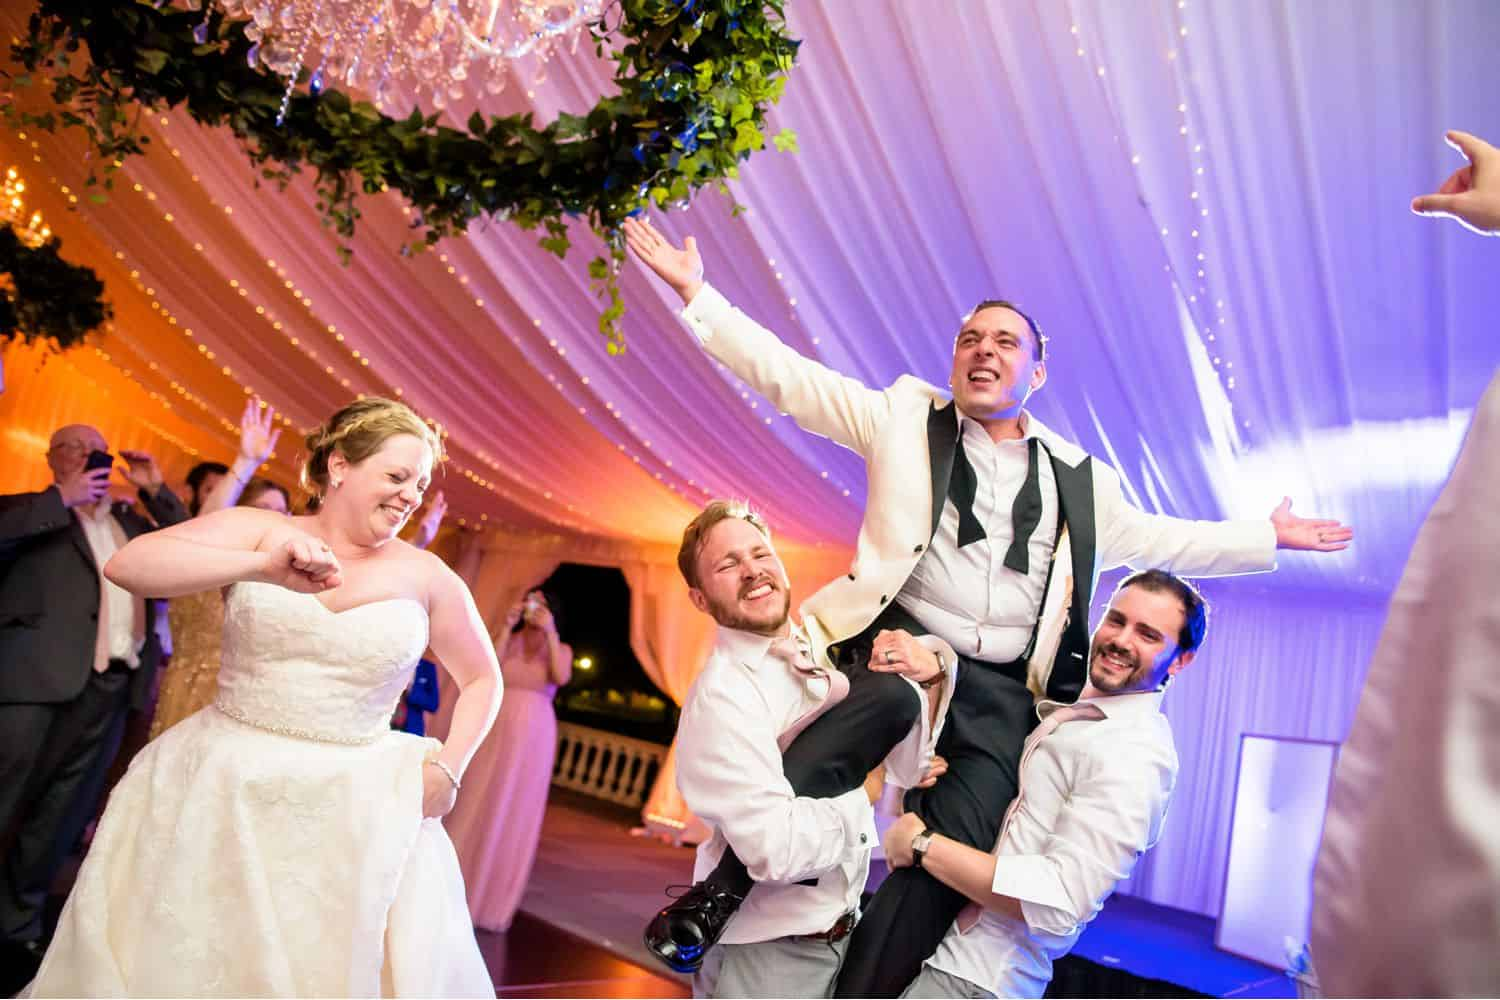 Make Money with Photography: Bride dances while two wedding guests lift Groom into the air.